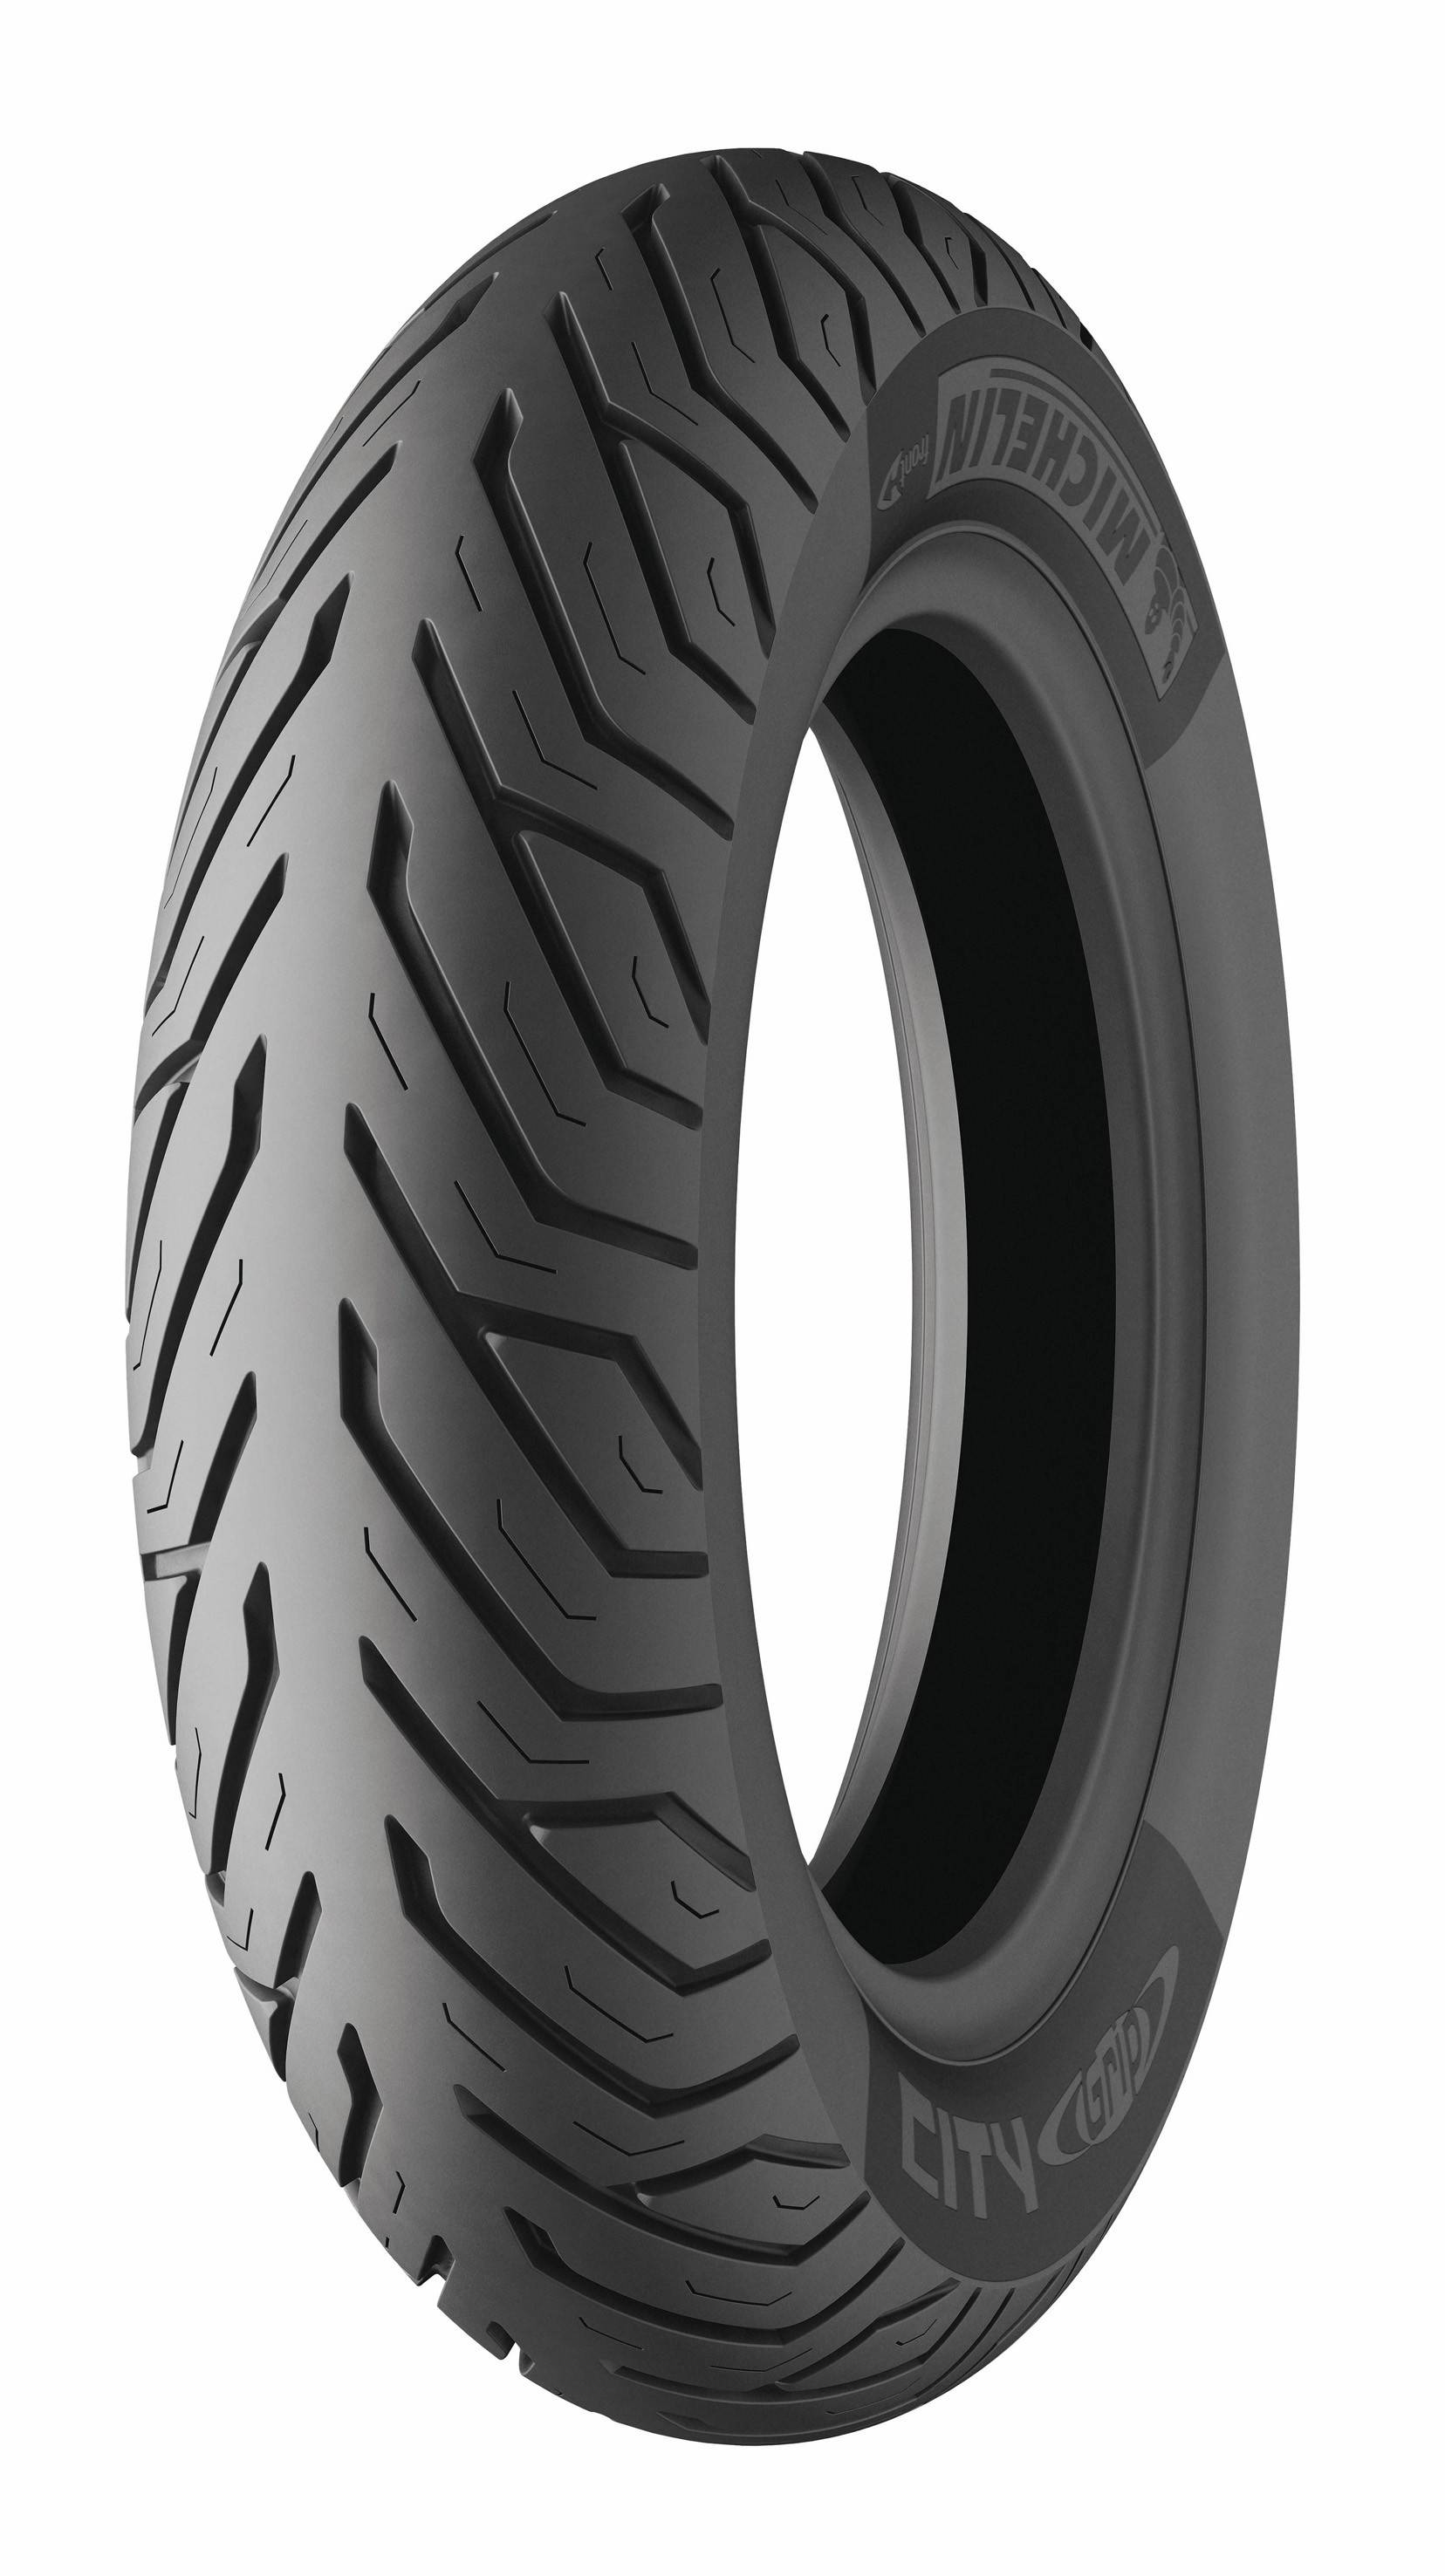 Michelin City Grip 100/90 - 12 64p  Reinf Tl Front/rear